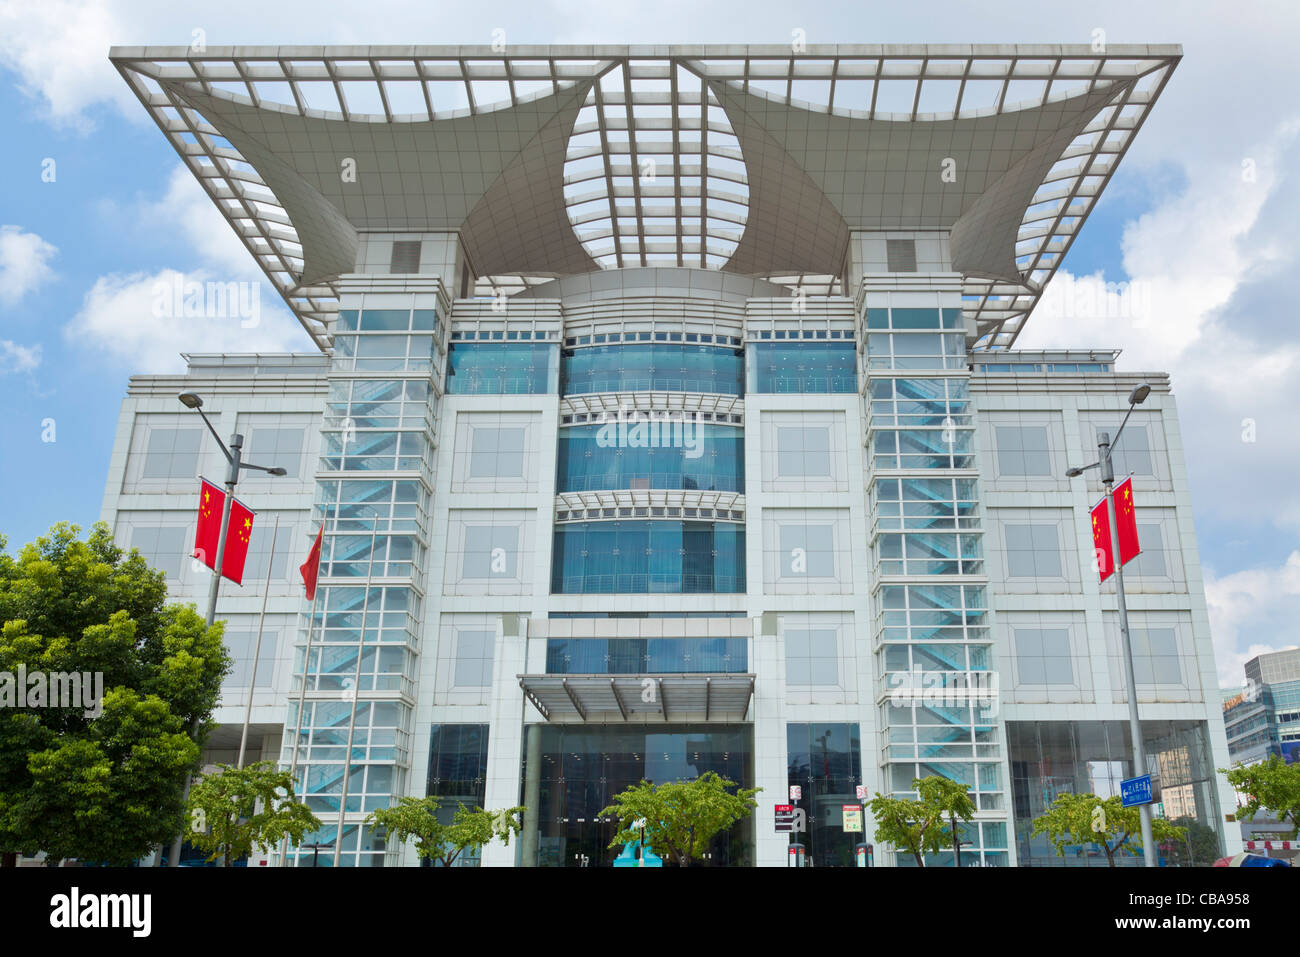 The Urban Planning Exhibition Center centre Shanghai  PRC, People's Republic of China, Asia - Stock Image